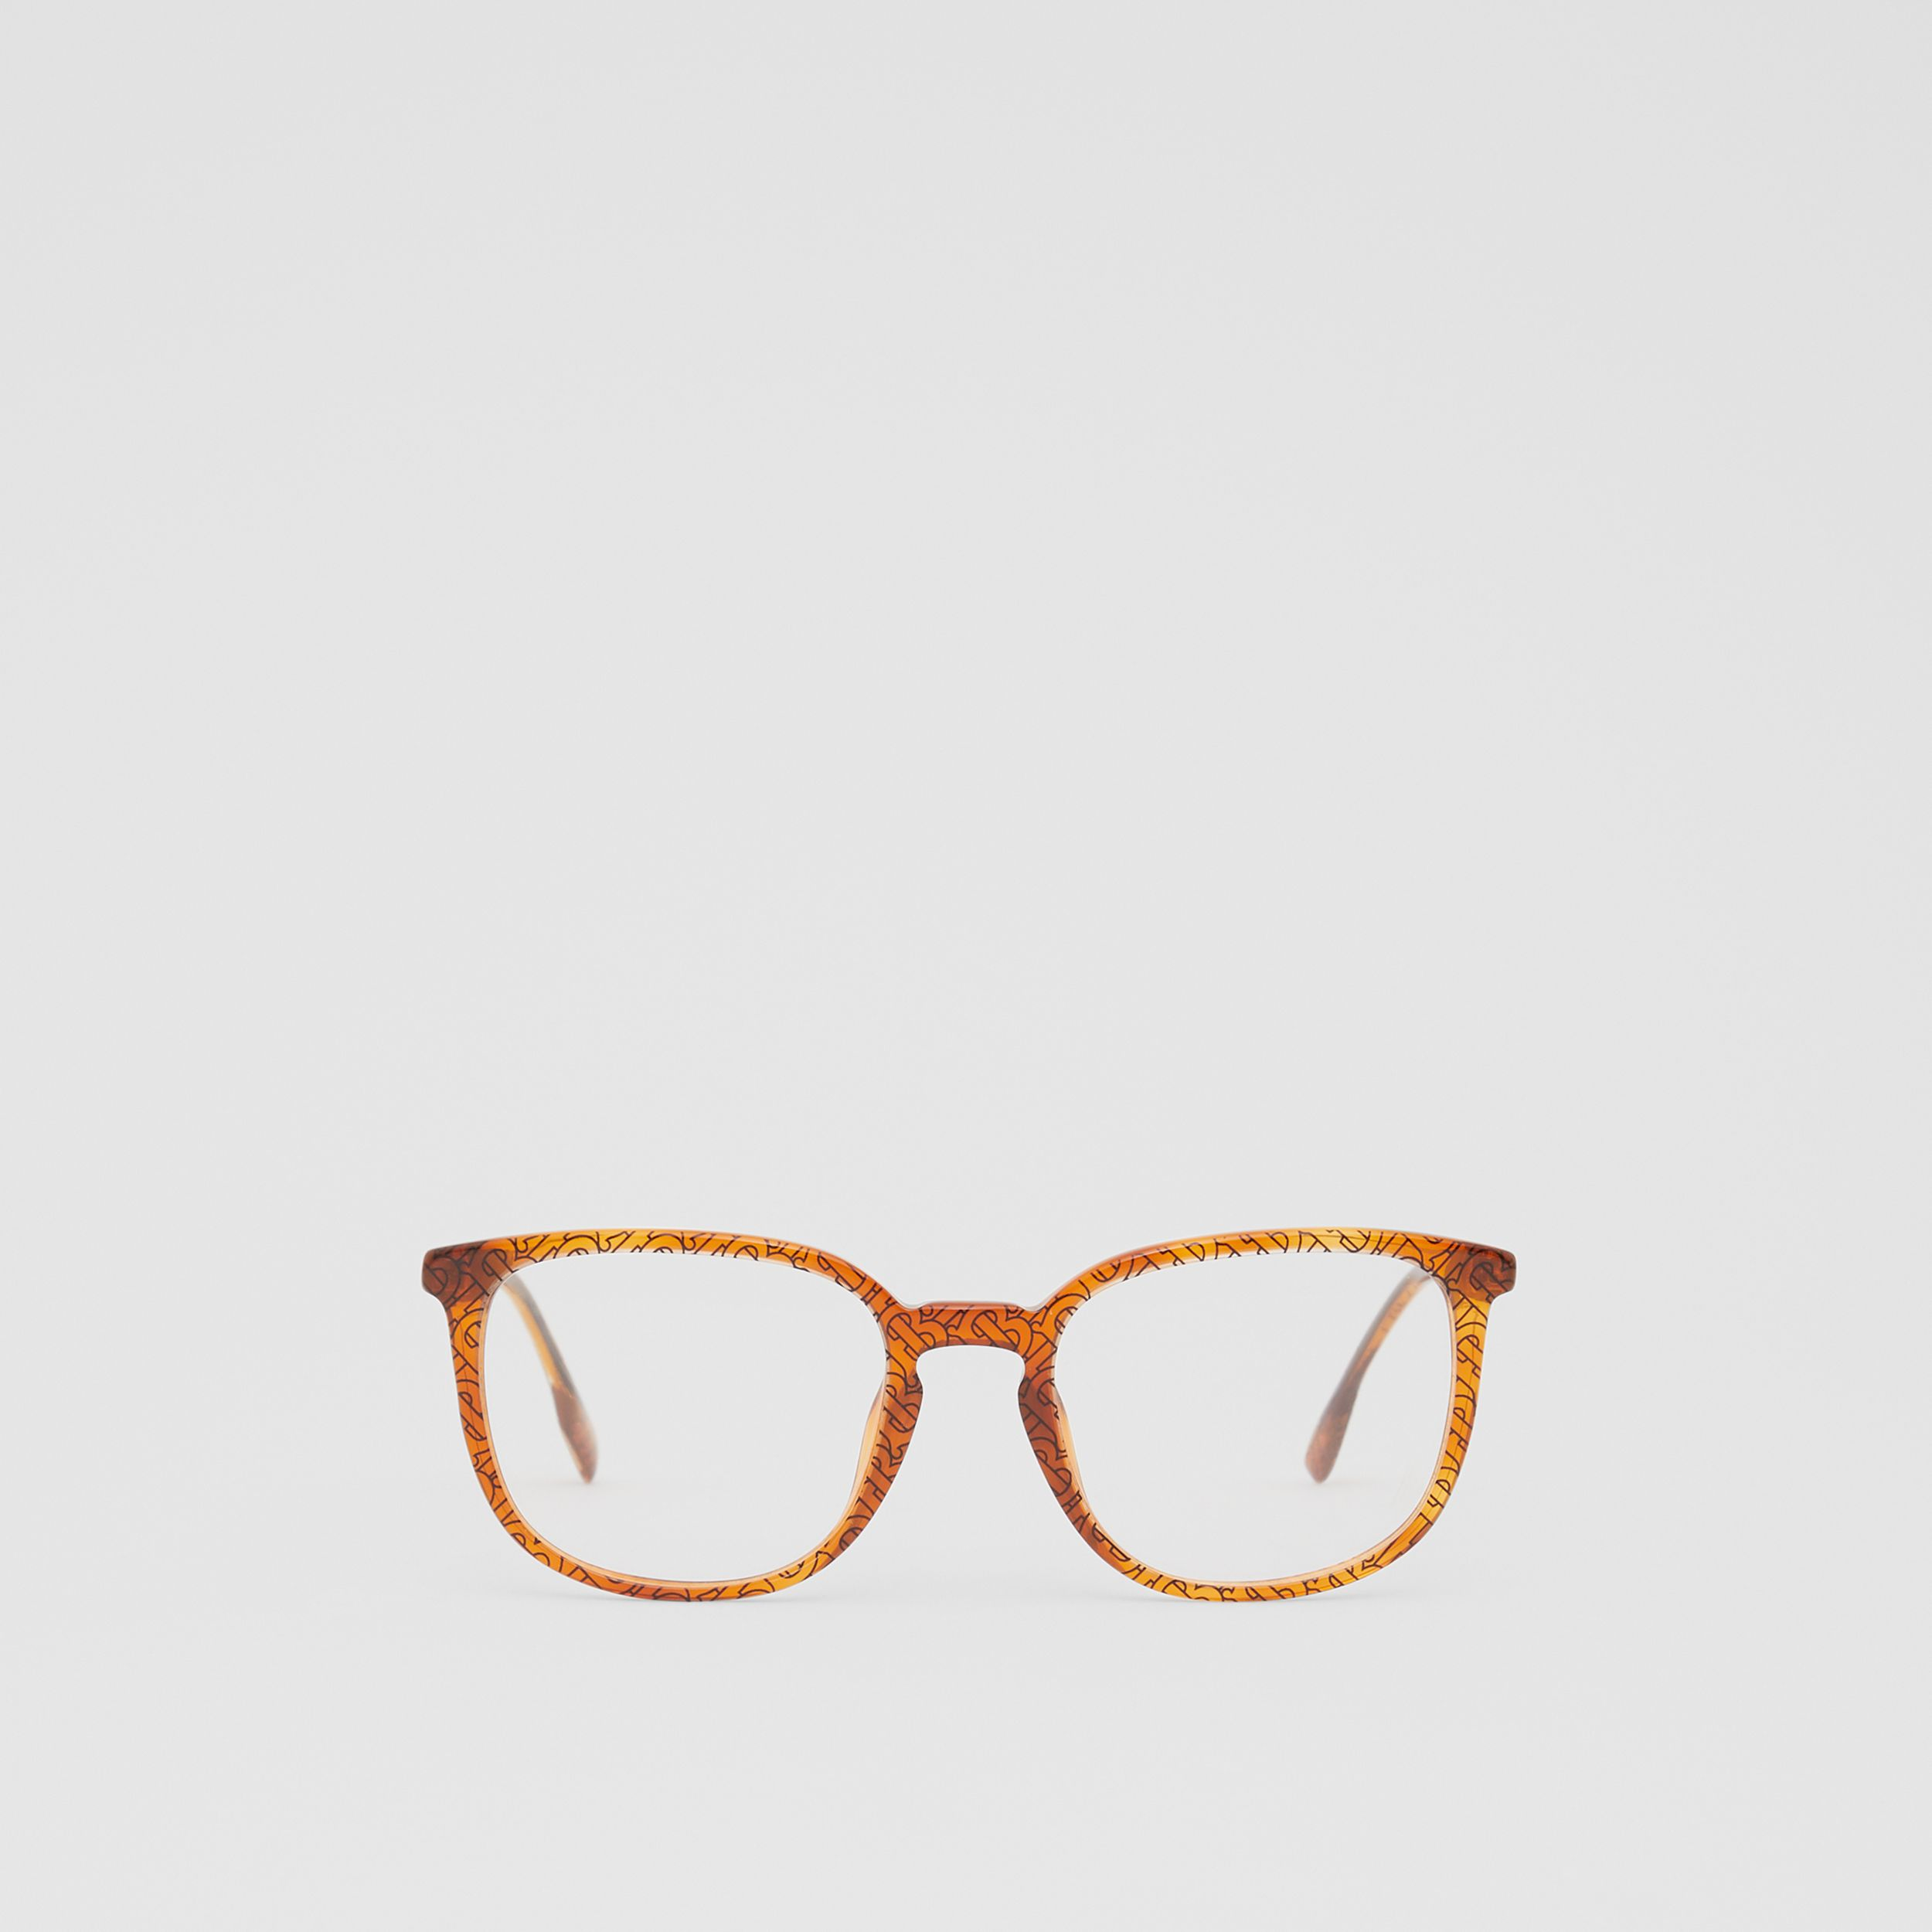 Monogram Print Square Optical Frames in Tortoiseshell Amber | Burberry - 1